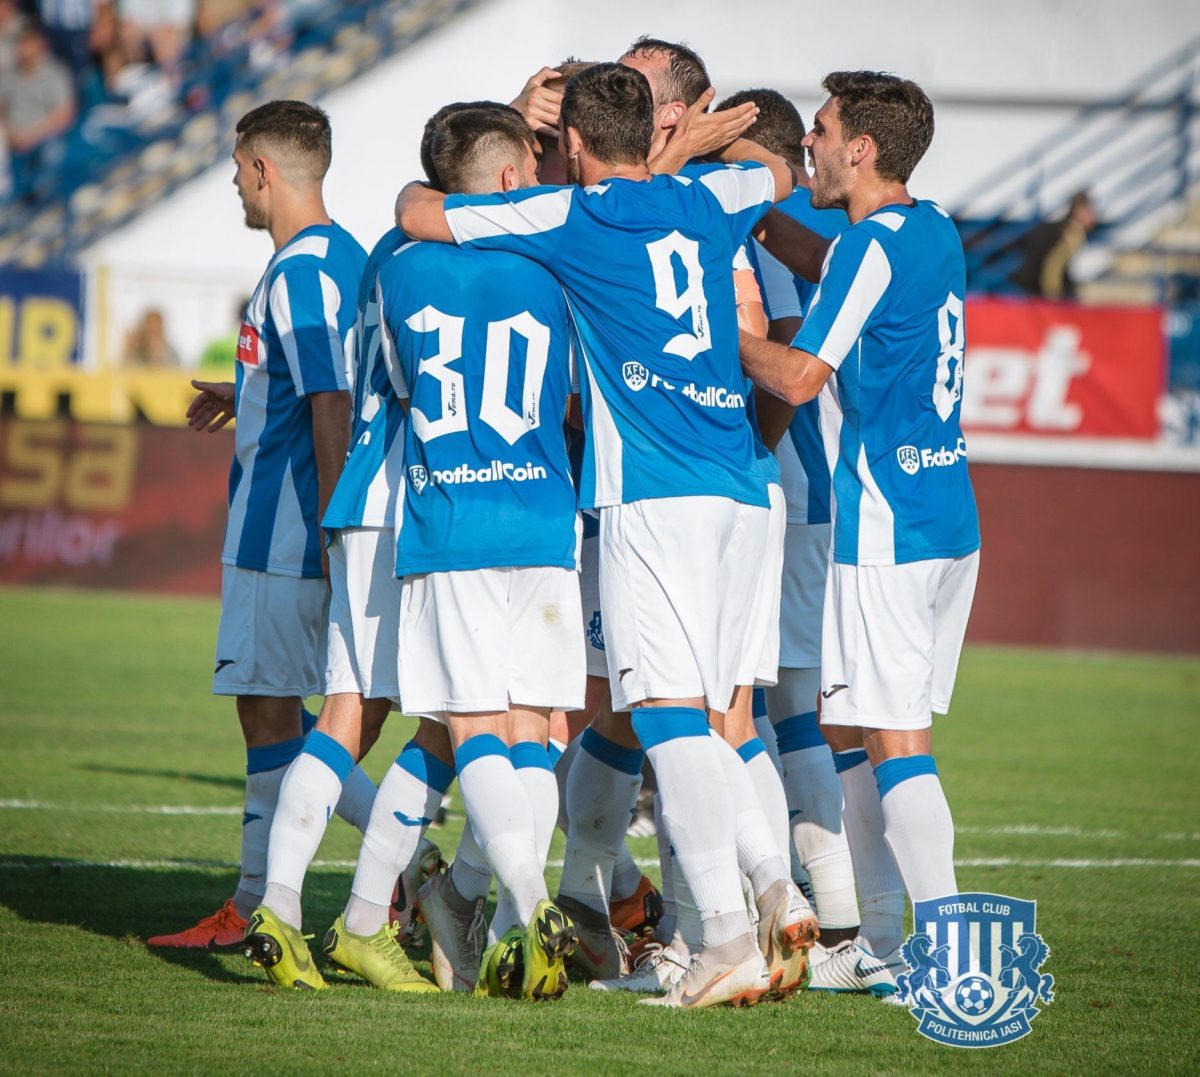 Poli Iasi is the first Romanian football club to be sponsored by a cryptocurrency start-up